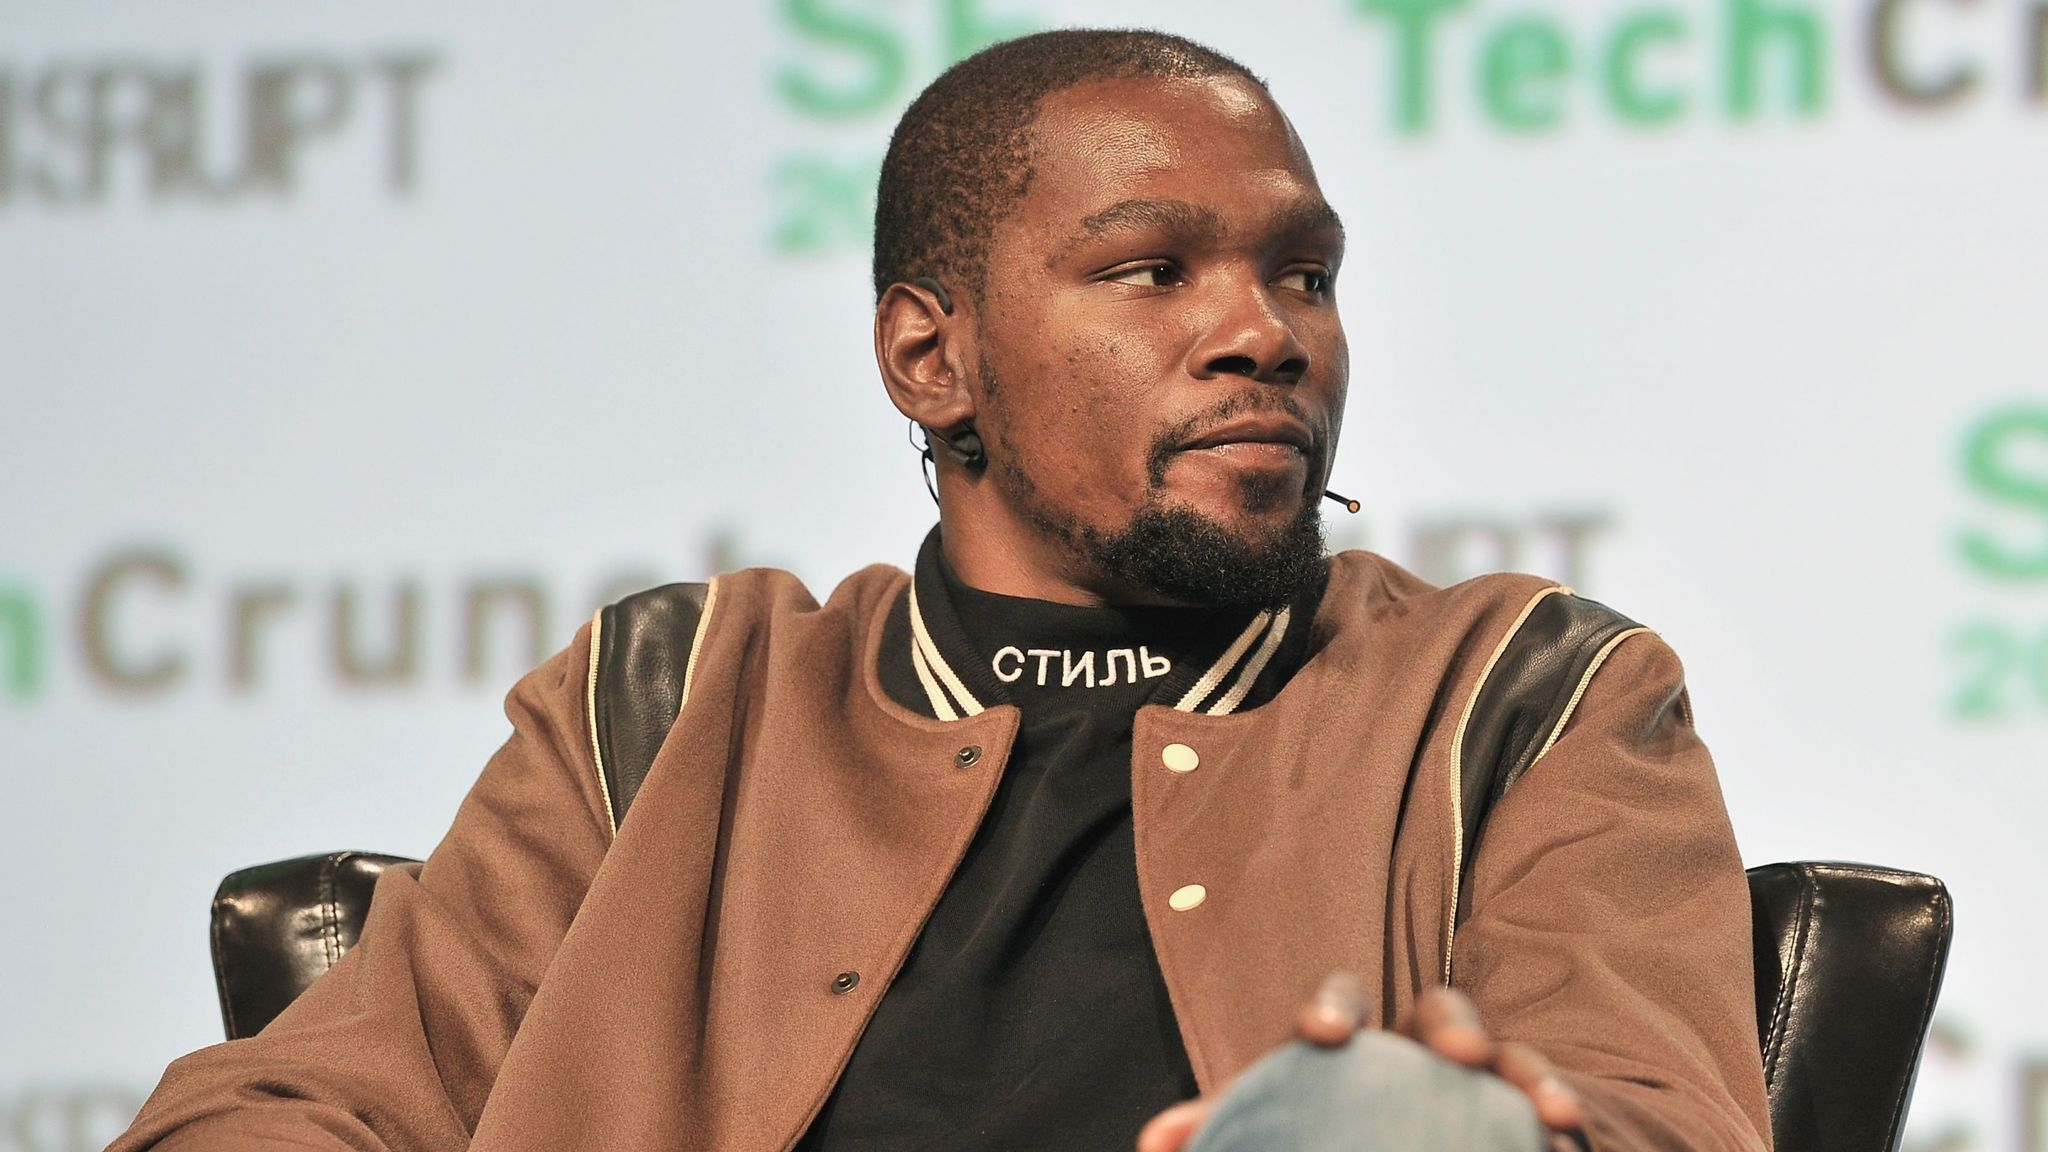 Kevin-Durant-Opens-Up-About-Being-Black-In-America-Thanks-Colin-Kaepernick-In-The-Process.jpg